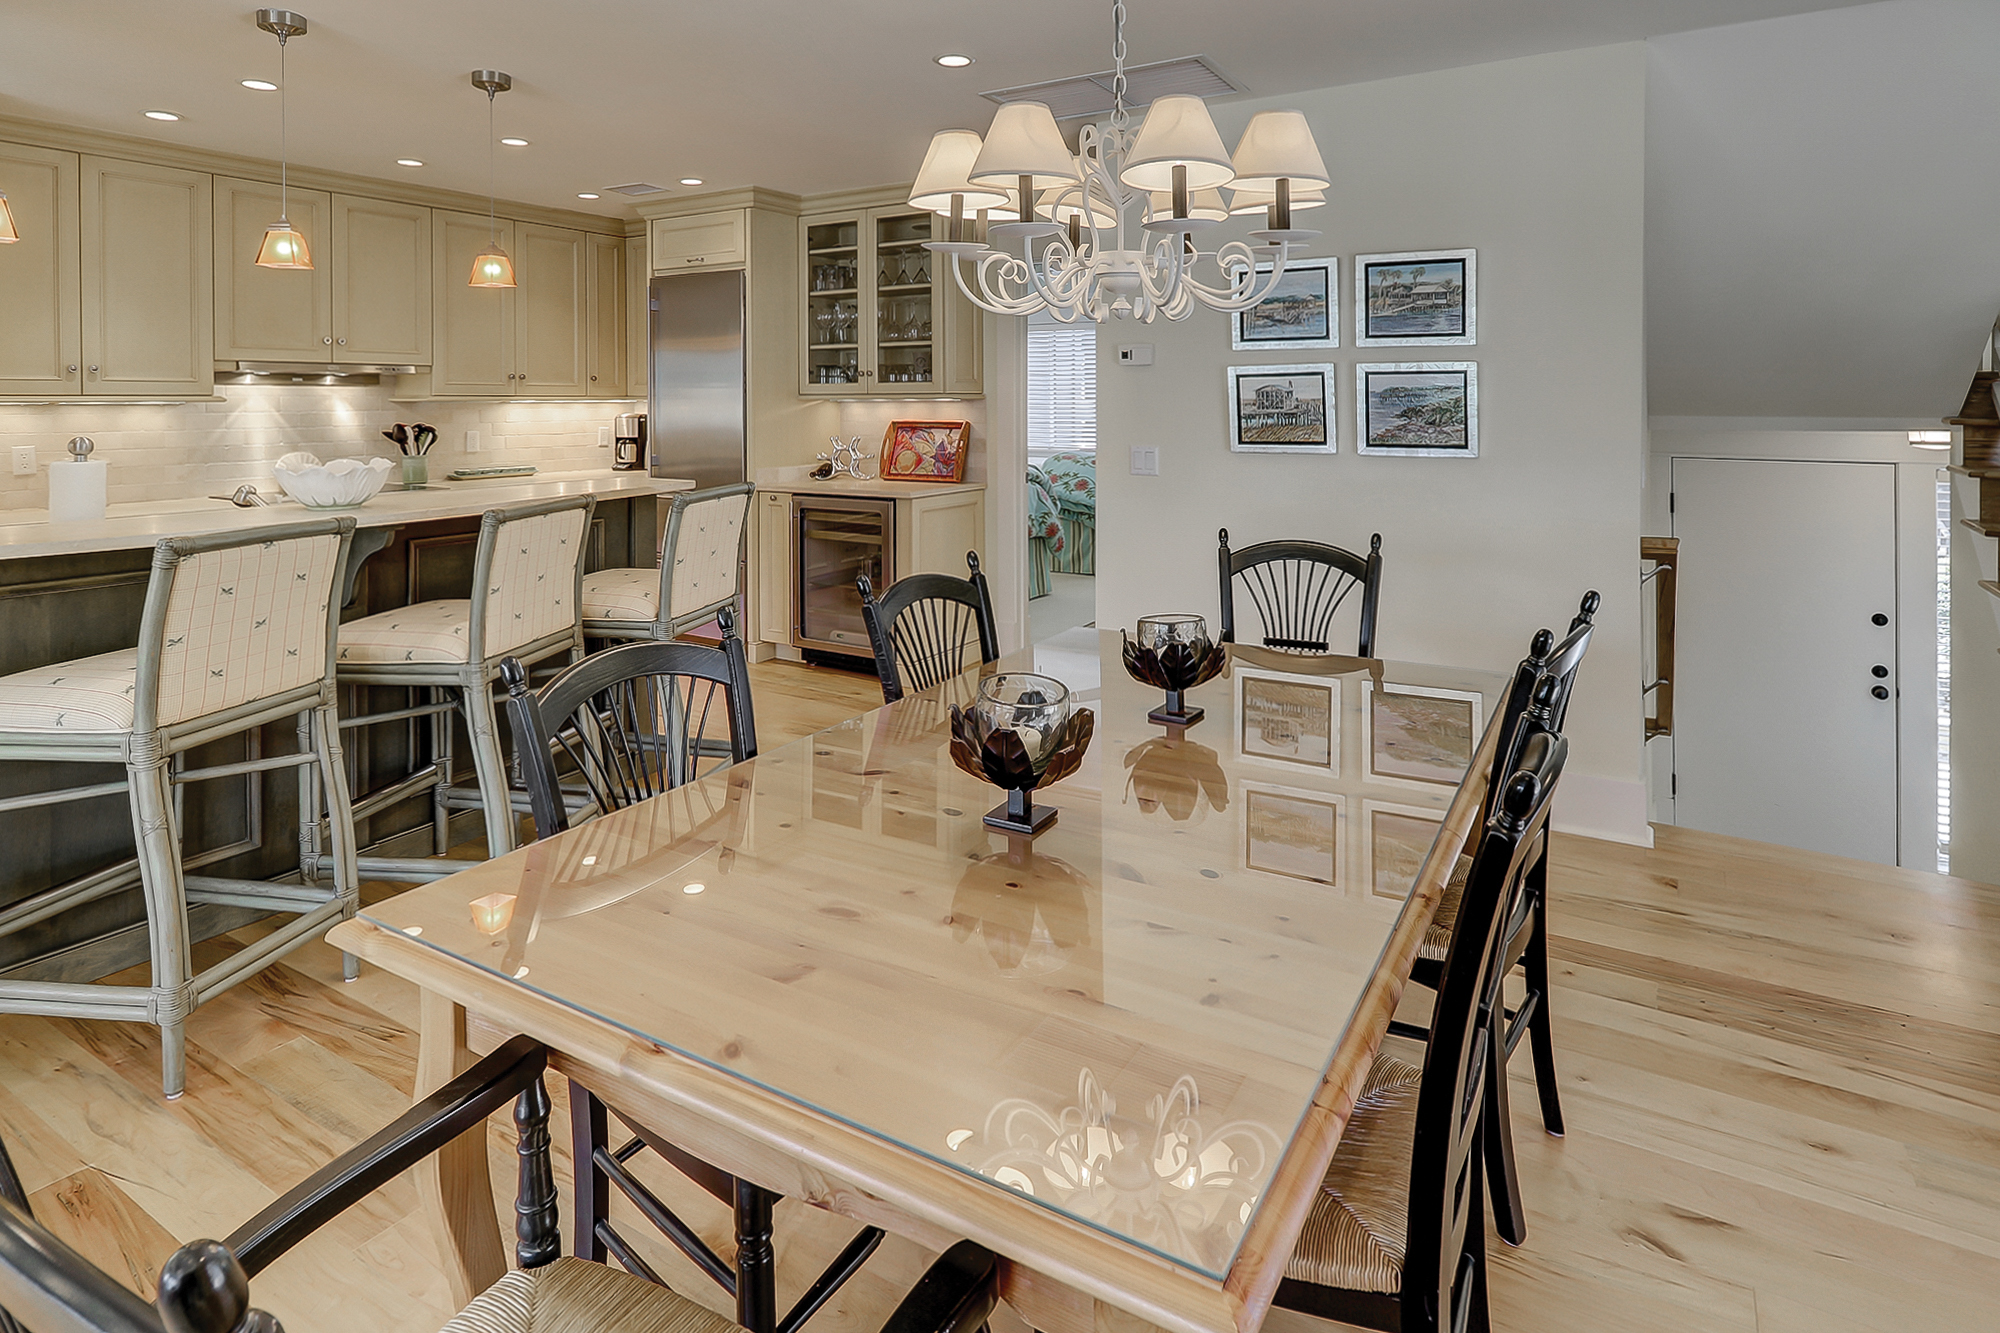 High end appliances, granite counter tops, island seating and beautiful hardwoods make this Turnberry Villa shine better than new. Palmetto Dunes Hilton Head Island.